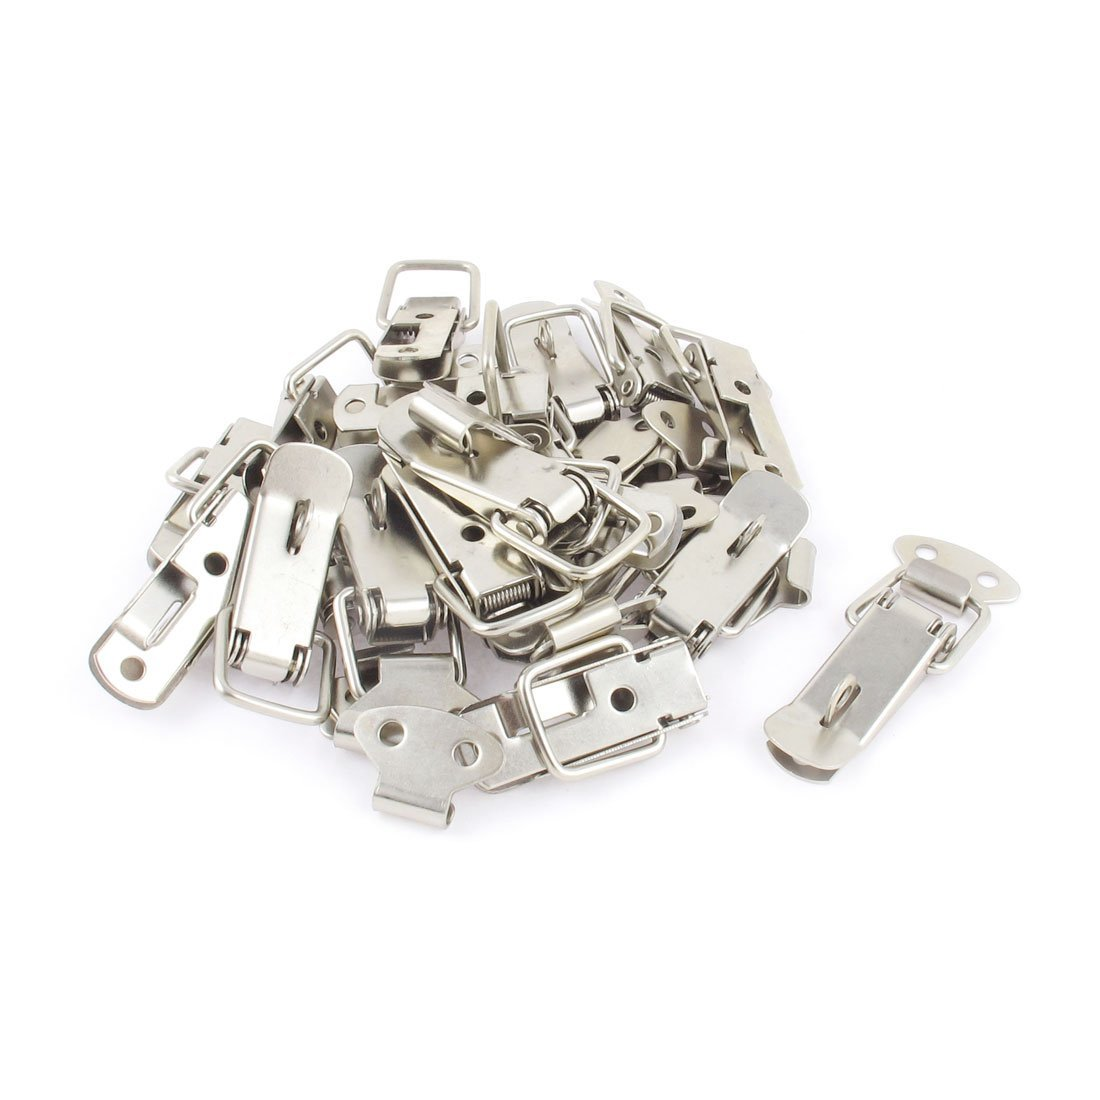 Uxcell Cabinet Spring Loaded Door Toggle Hasp Latch Catch Ltd 5.5cm Dragonmarts Co Set of 20 // Uxcell a15010700ux0334